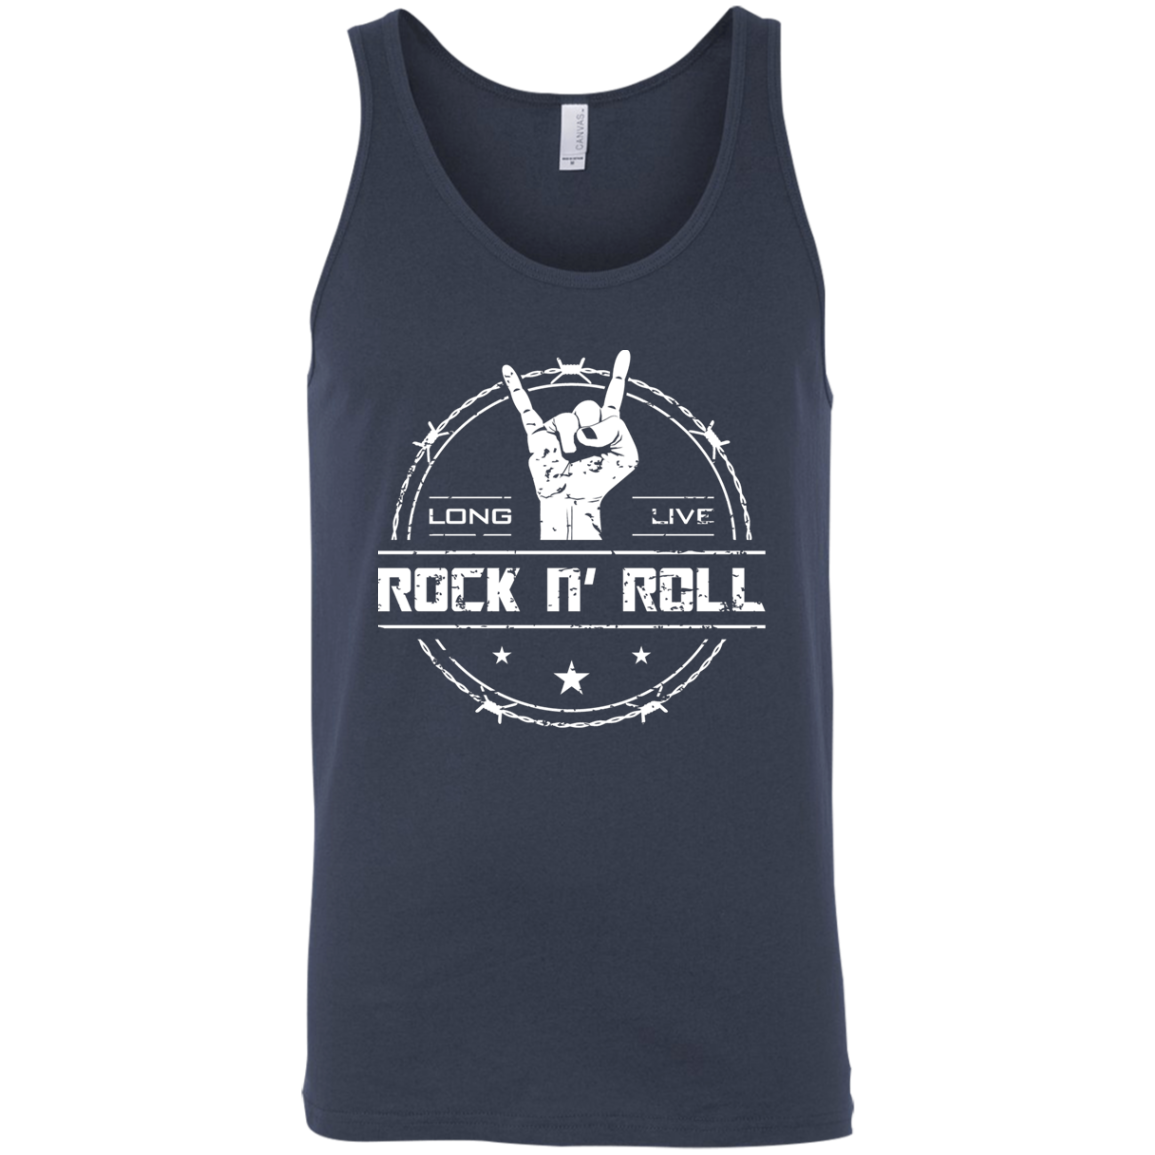 cool long live rock and roll tank top